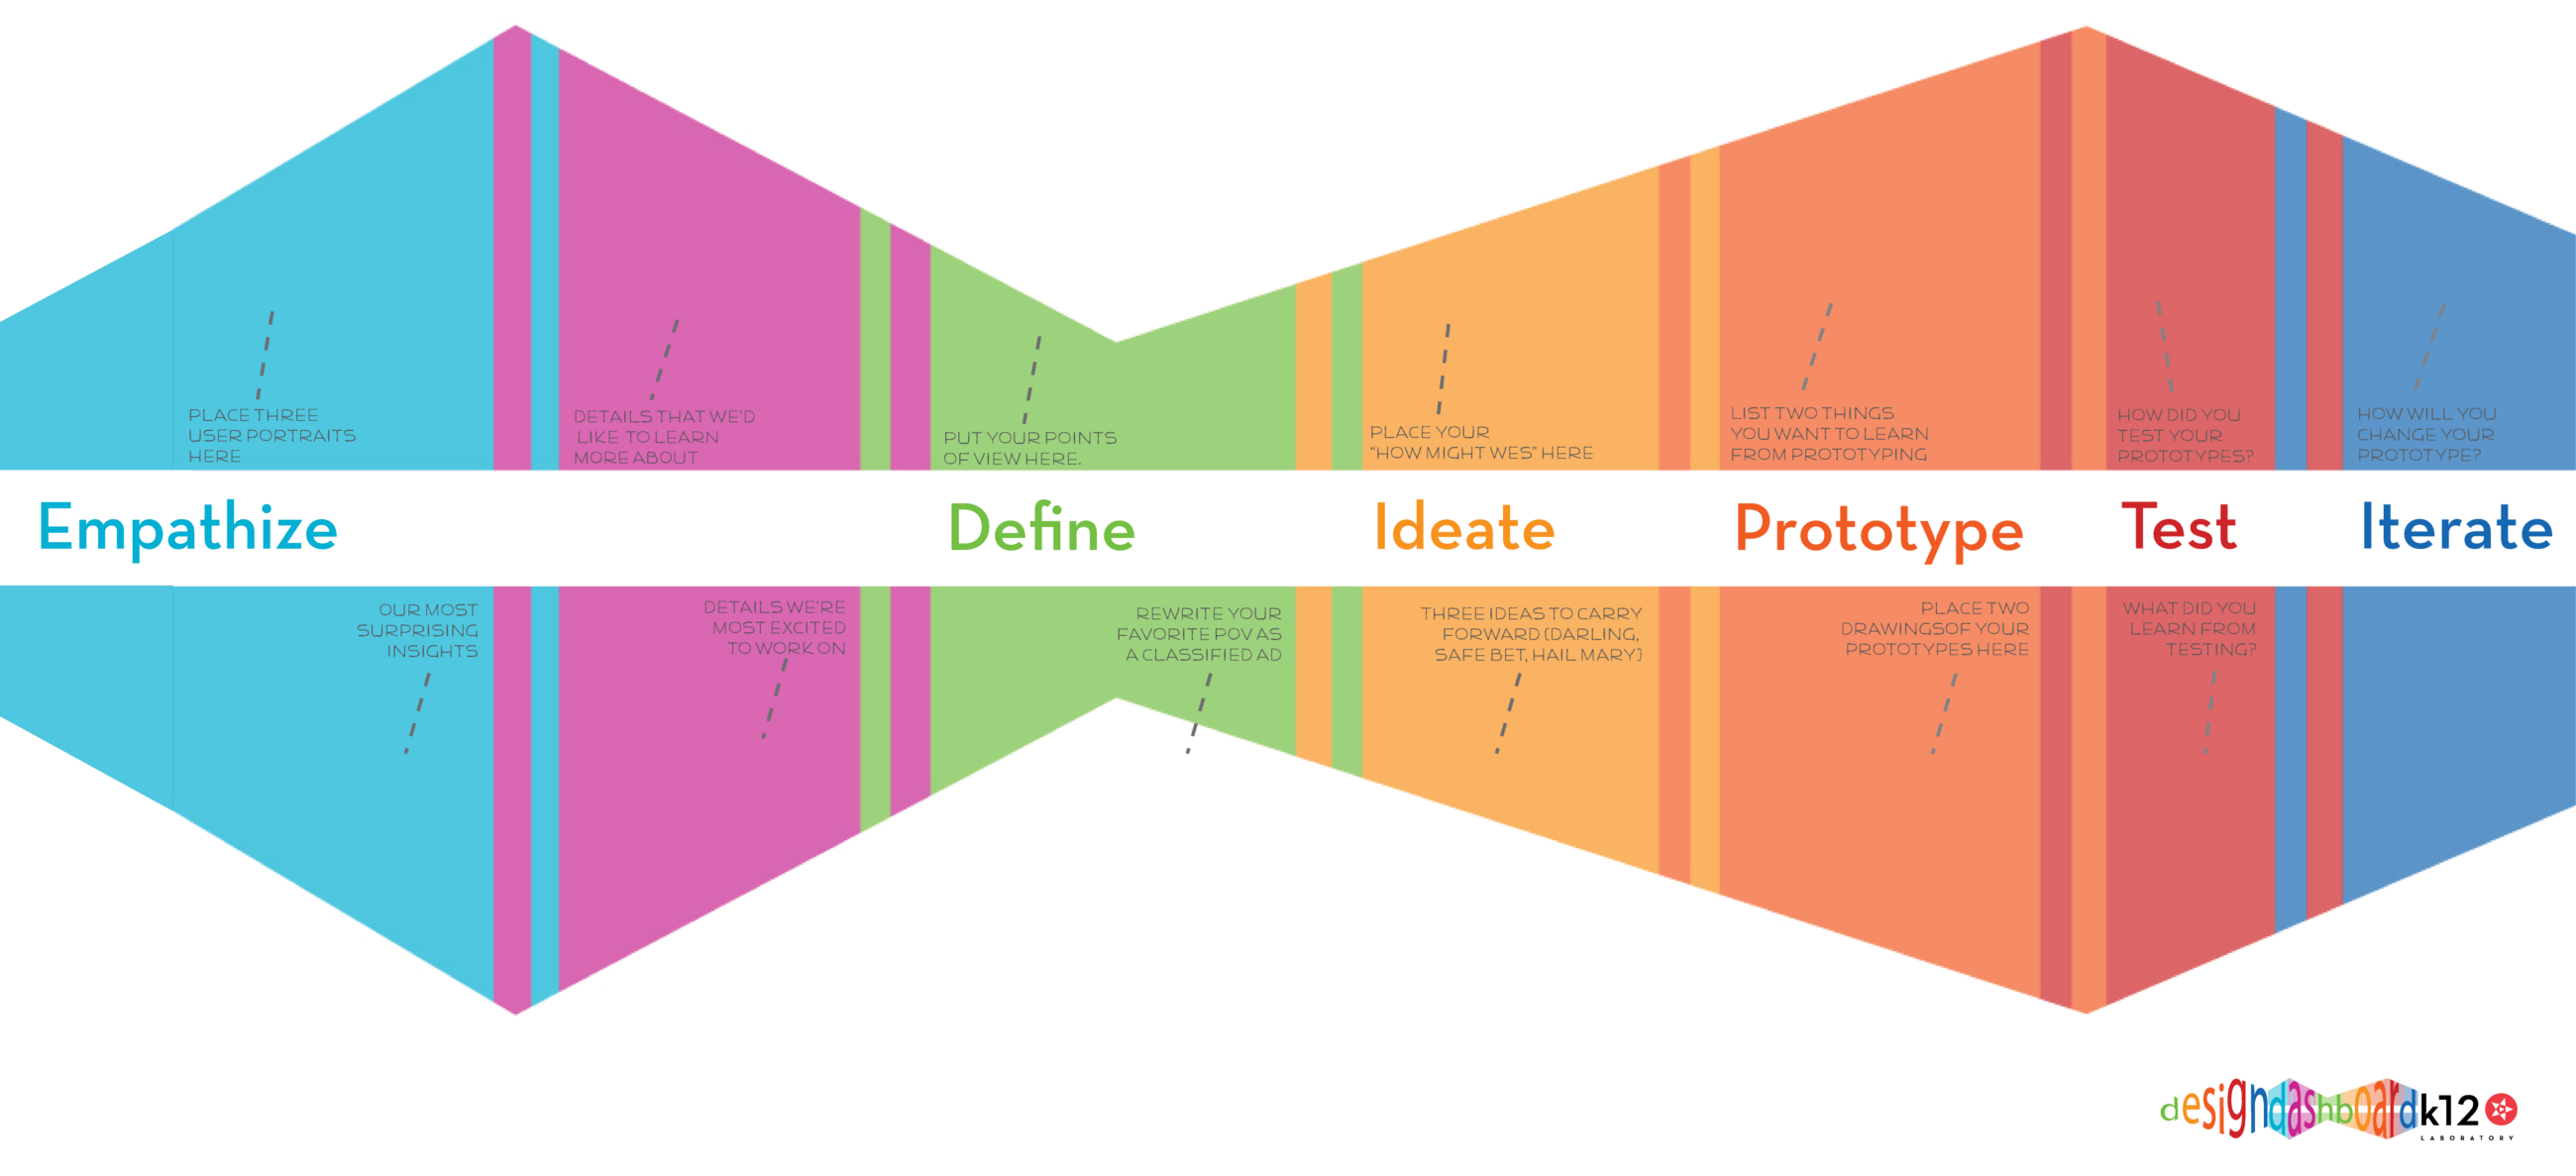 On Design Thinking